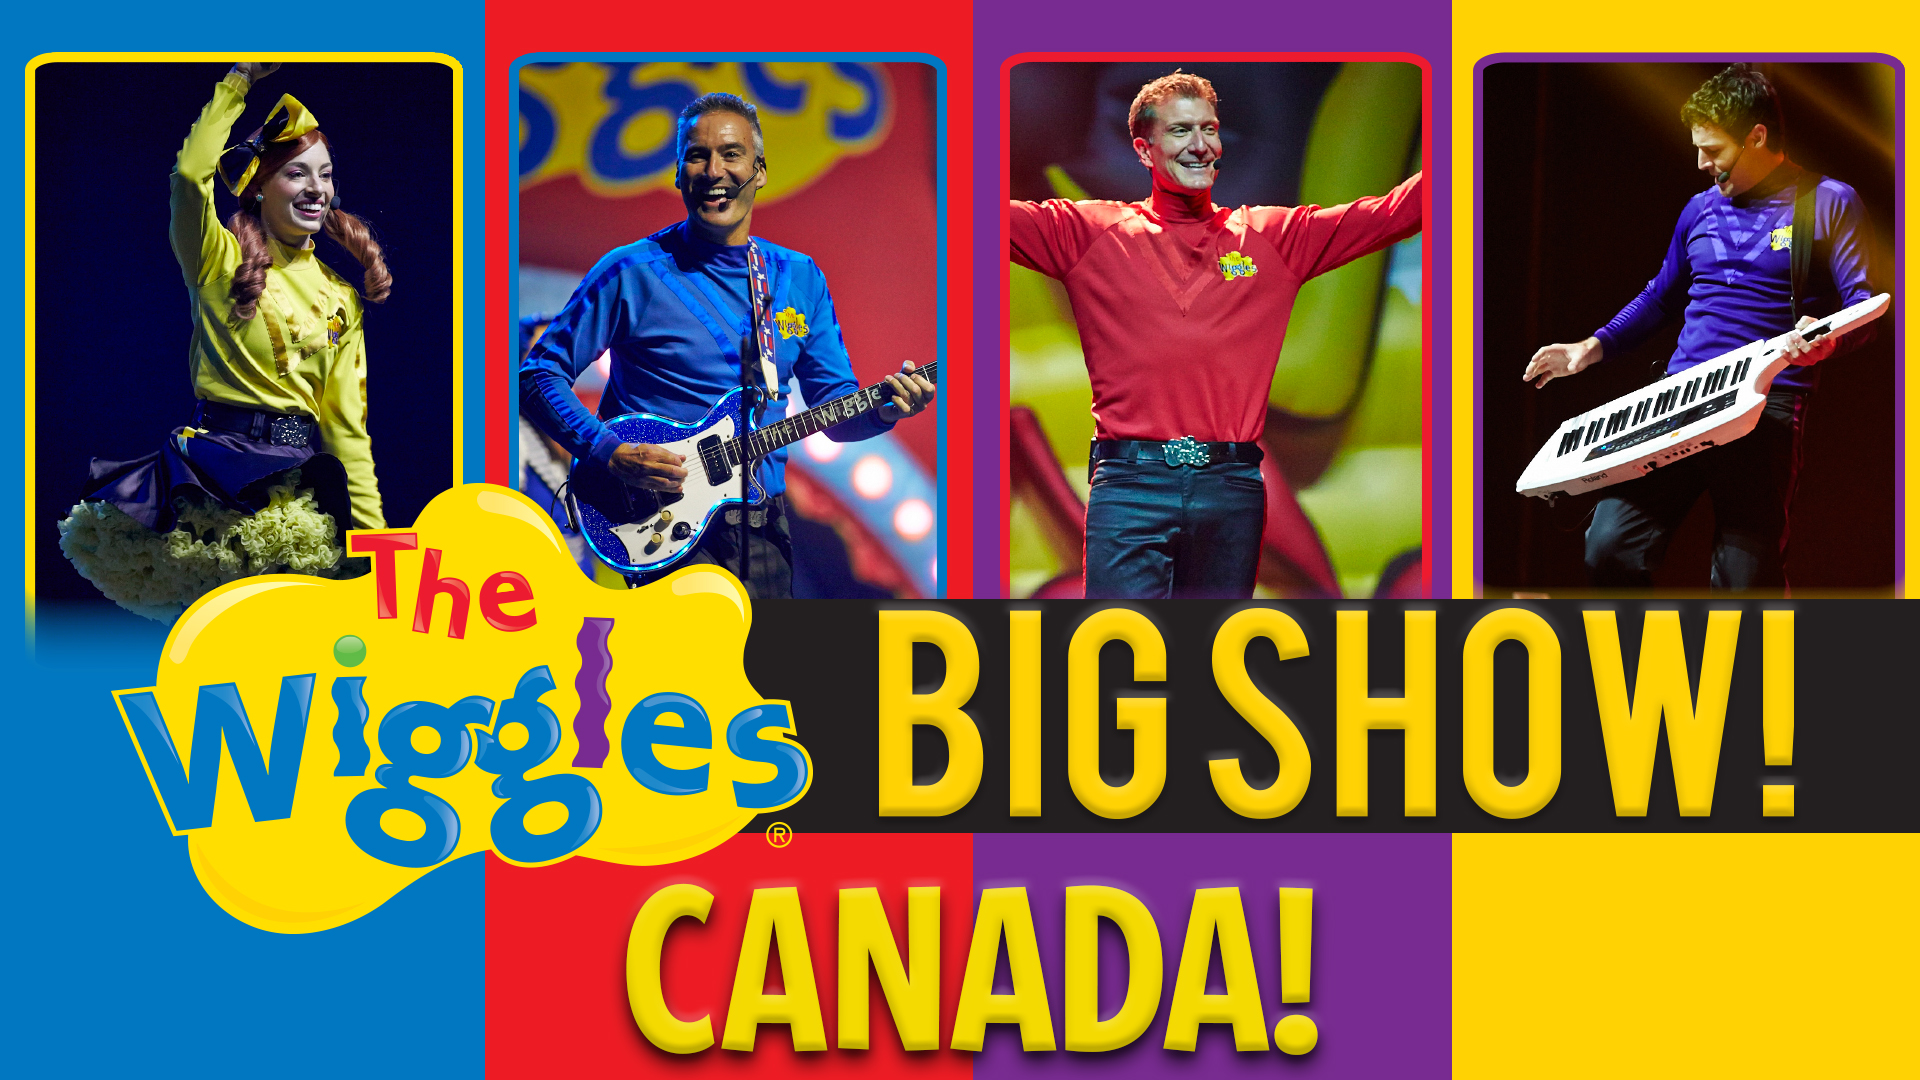 The Wiggles! Big Show! CANADA!